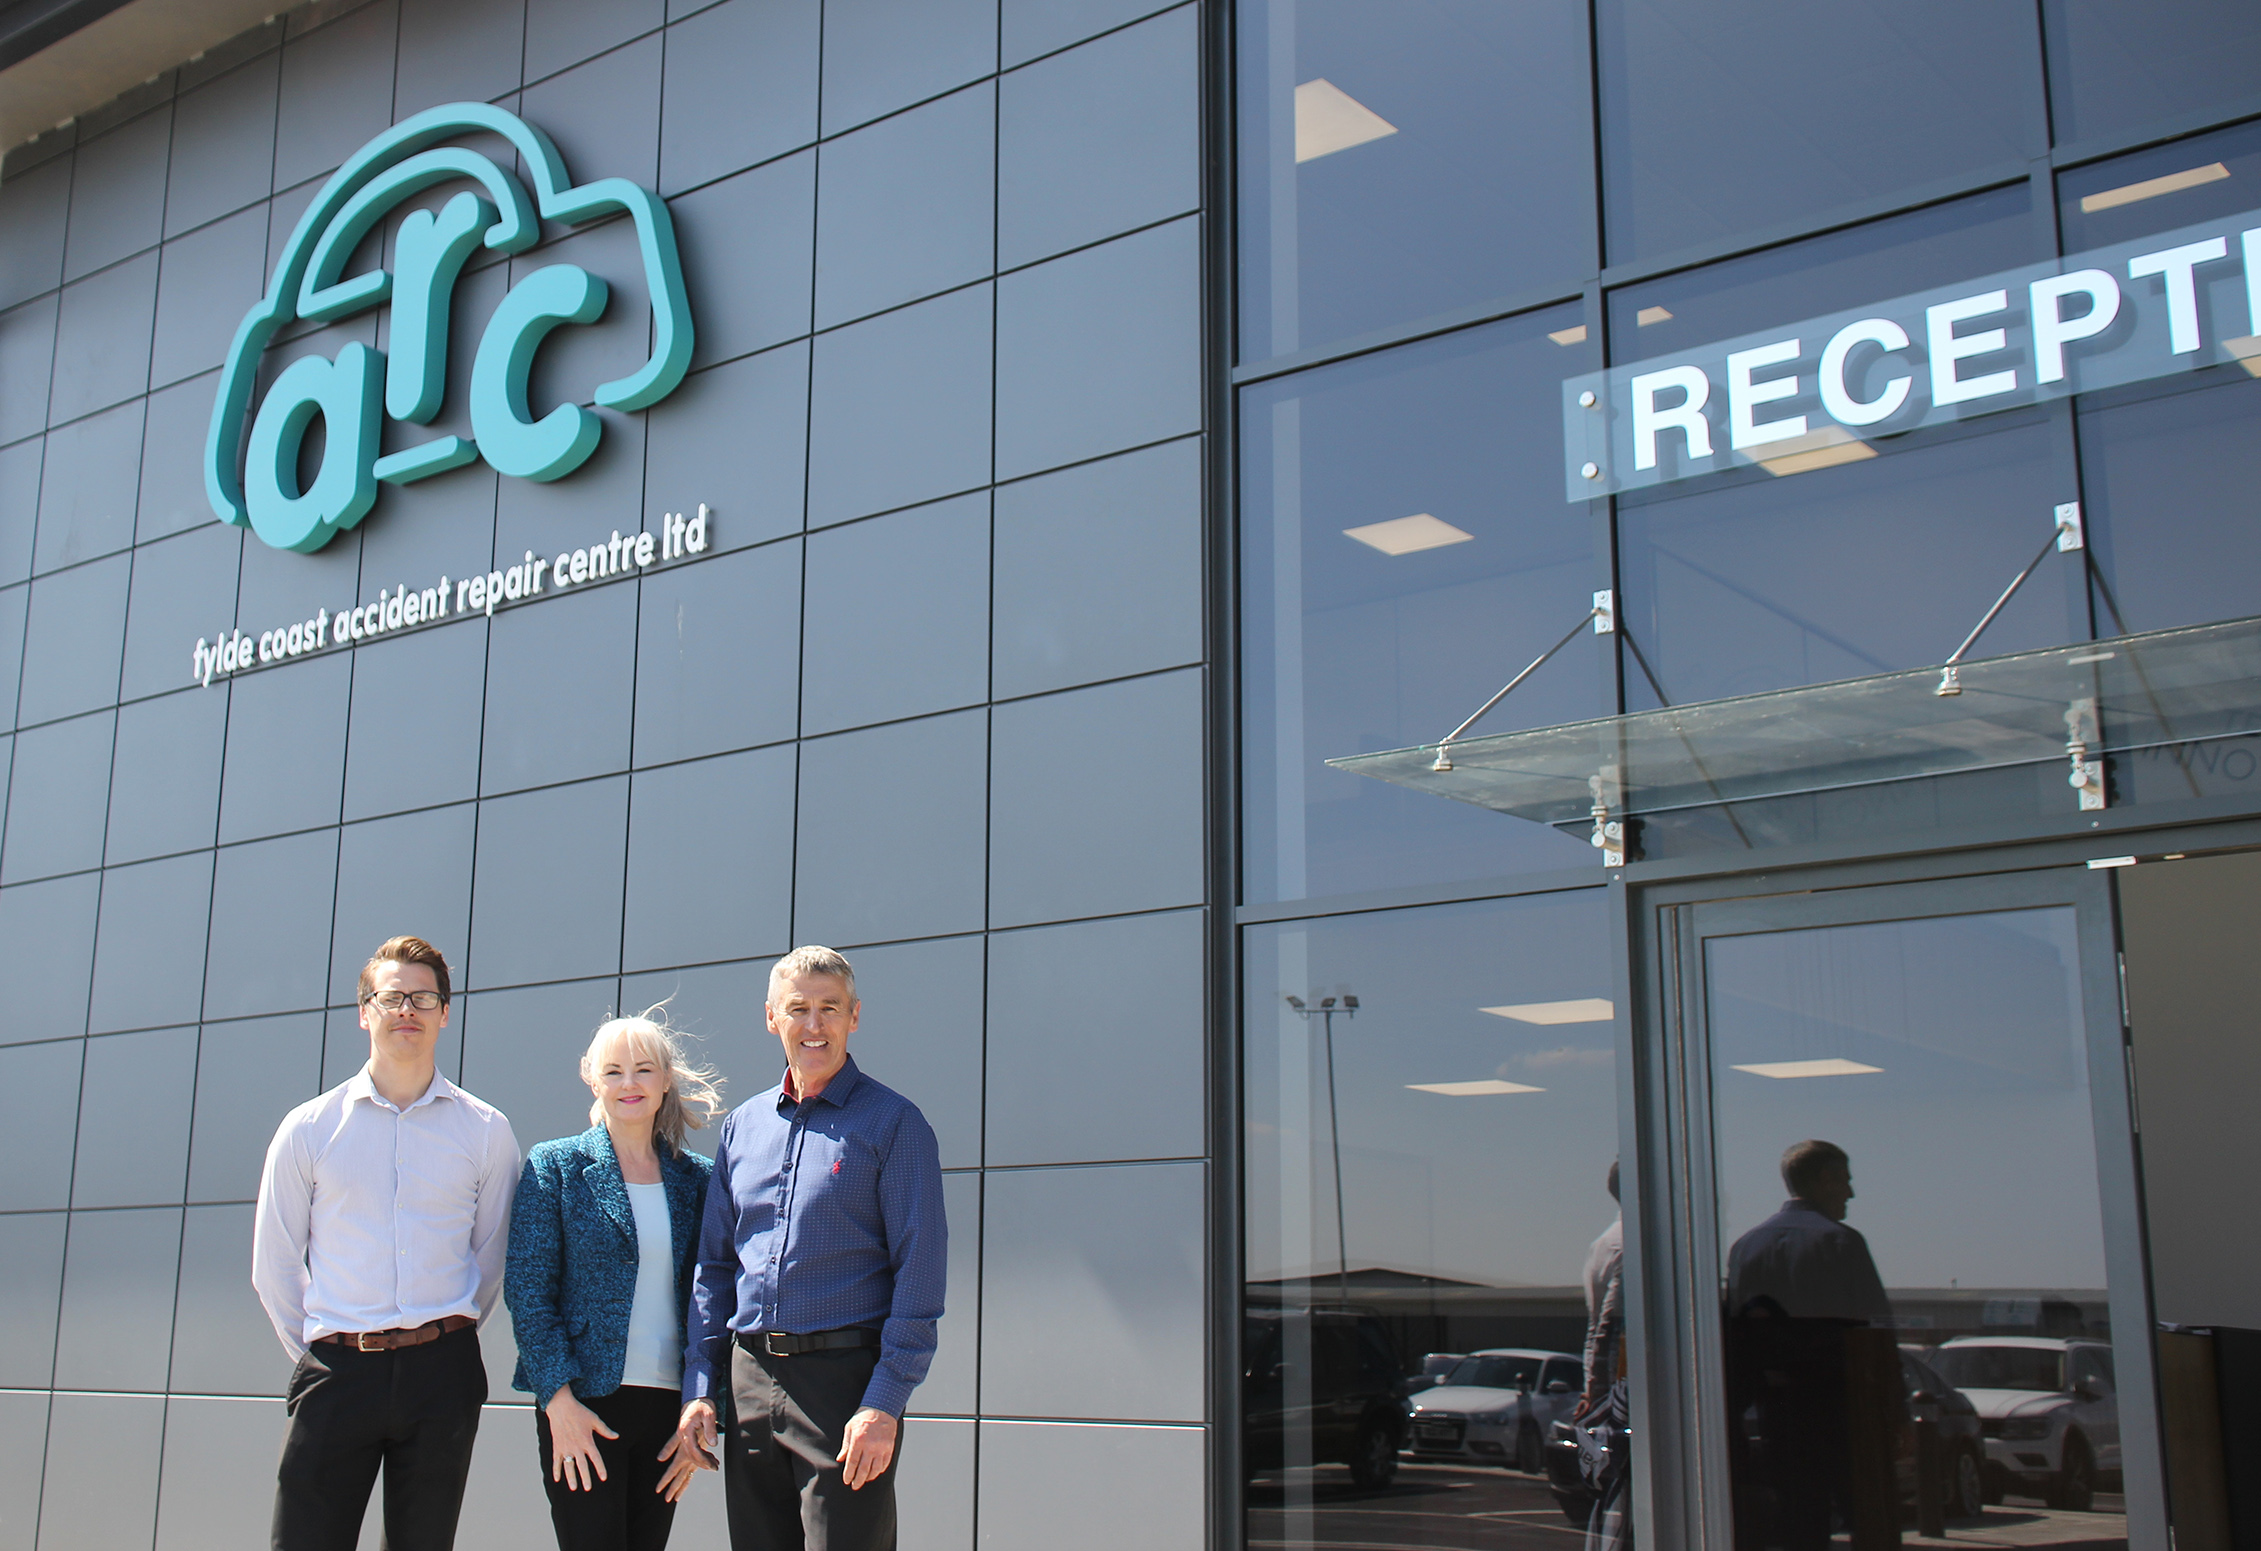 Fylde Coast ARC opens £2M state of the art facility